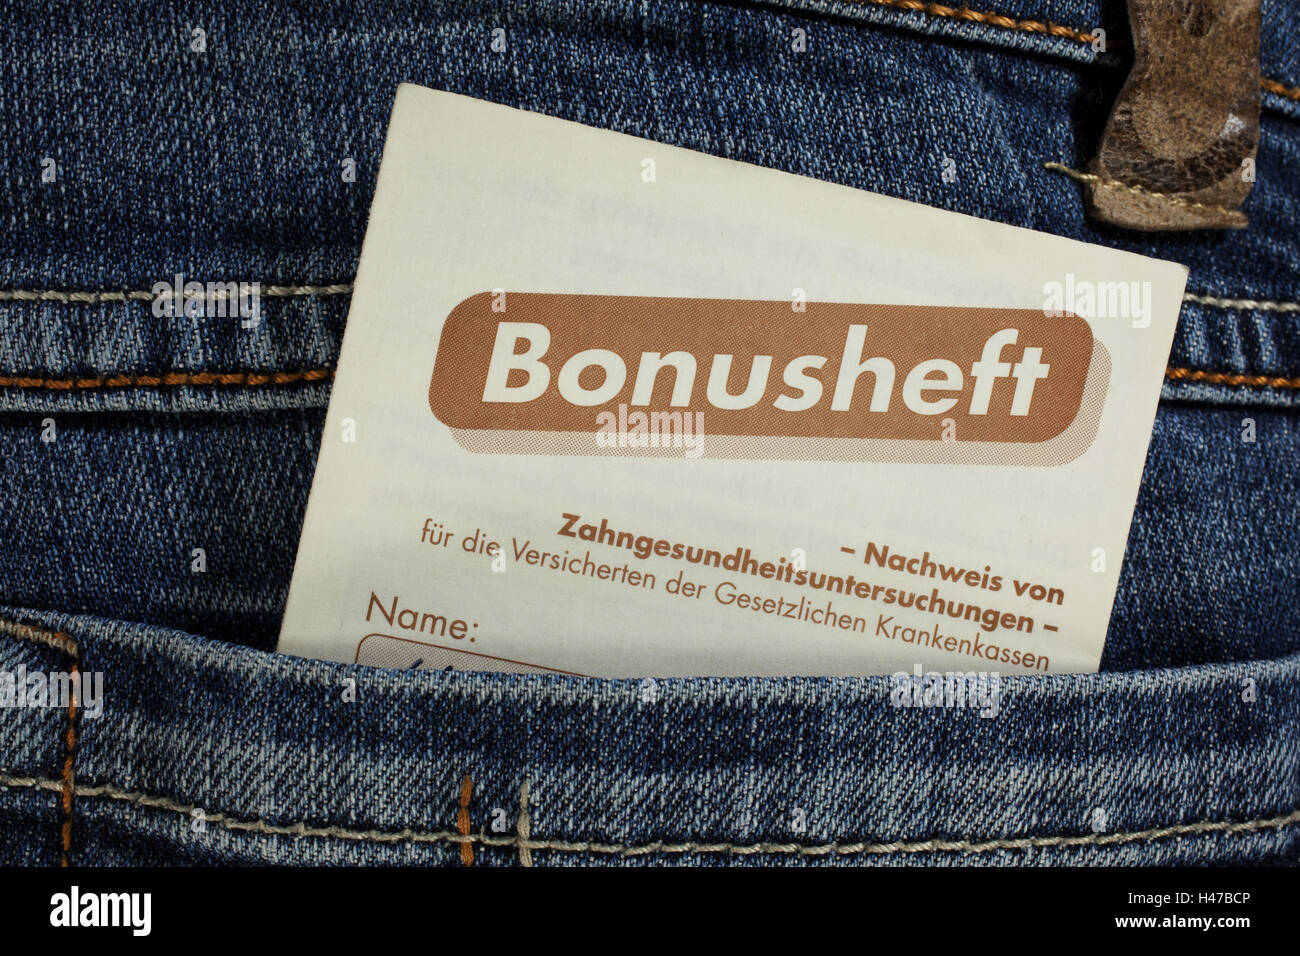 Cog-medical bonus notebook in a jeans pouch, - Stock Image